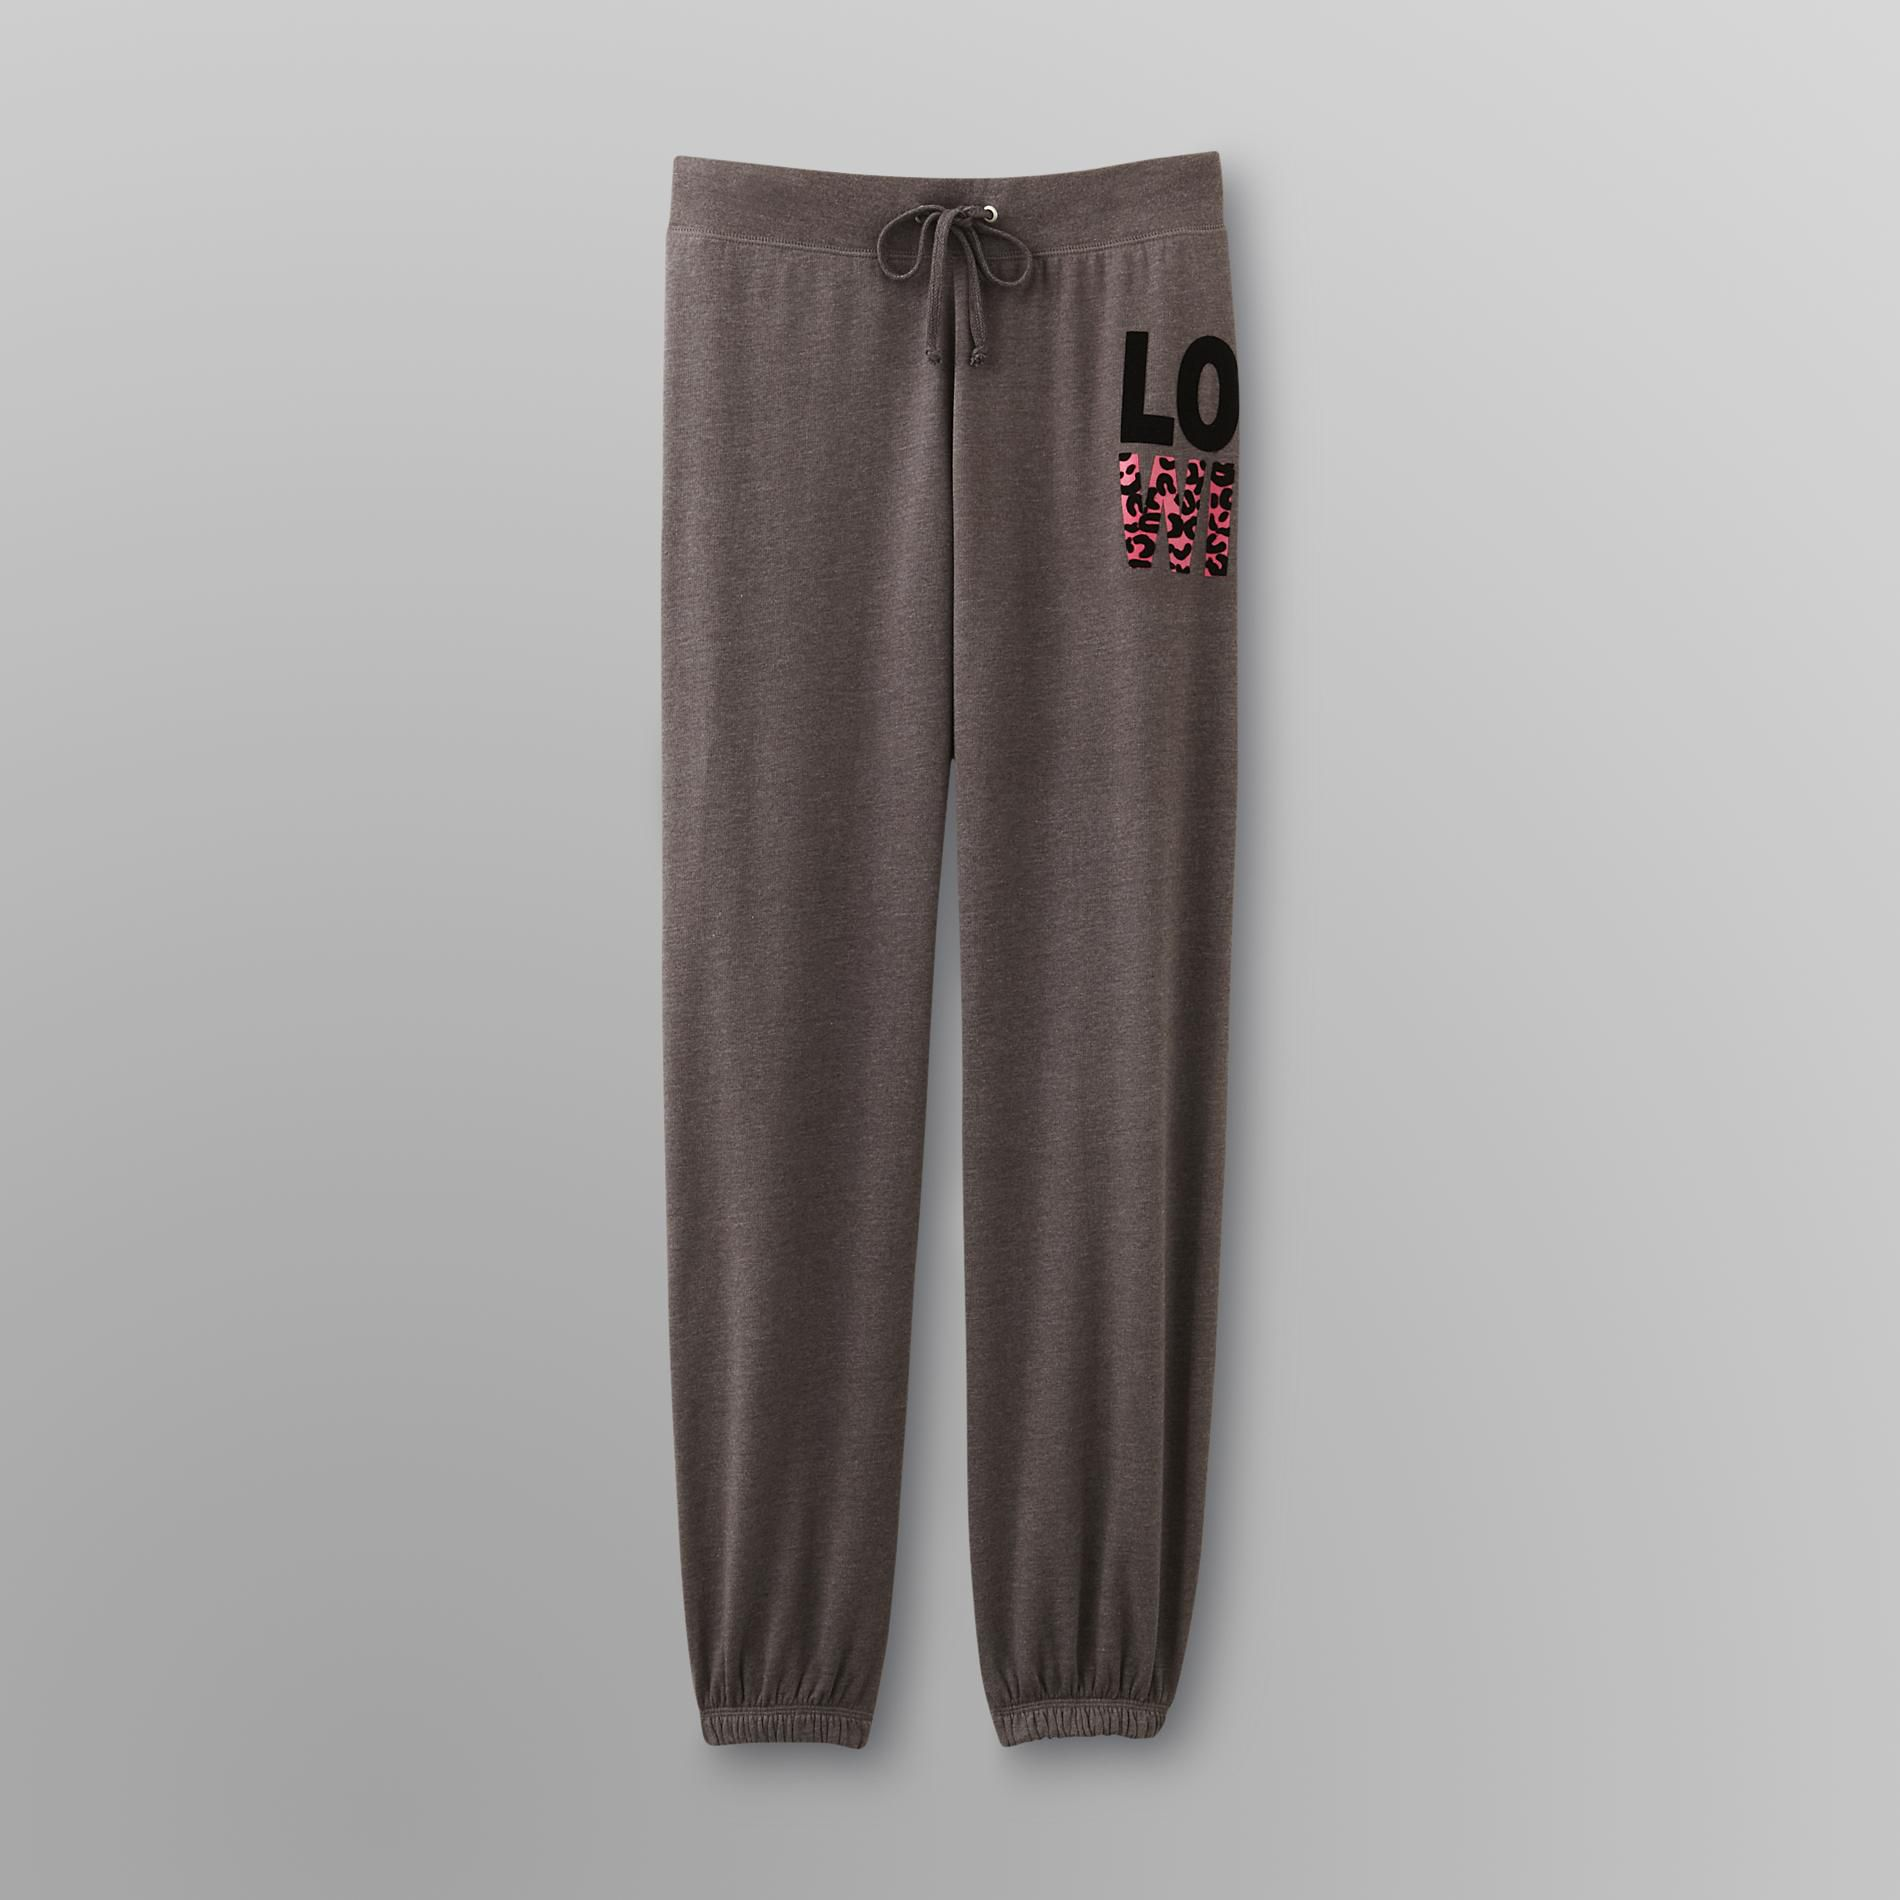 Joe by Joe Boxer Women's Lounge Pants at Sears.com